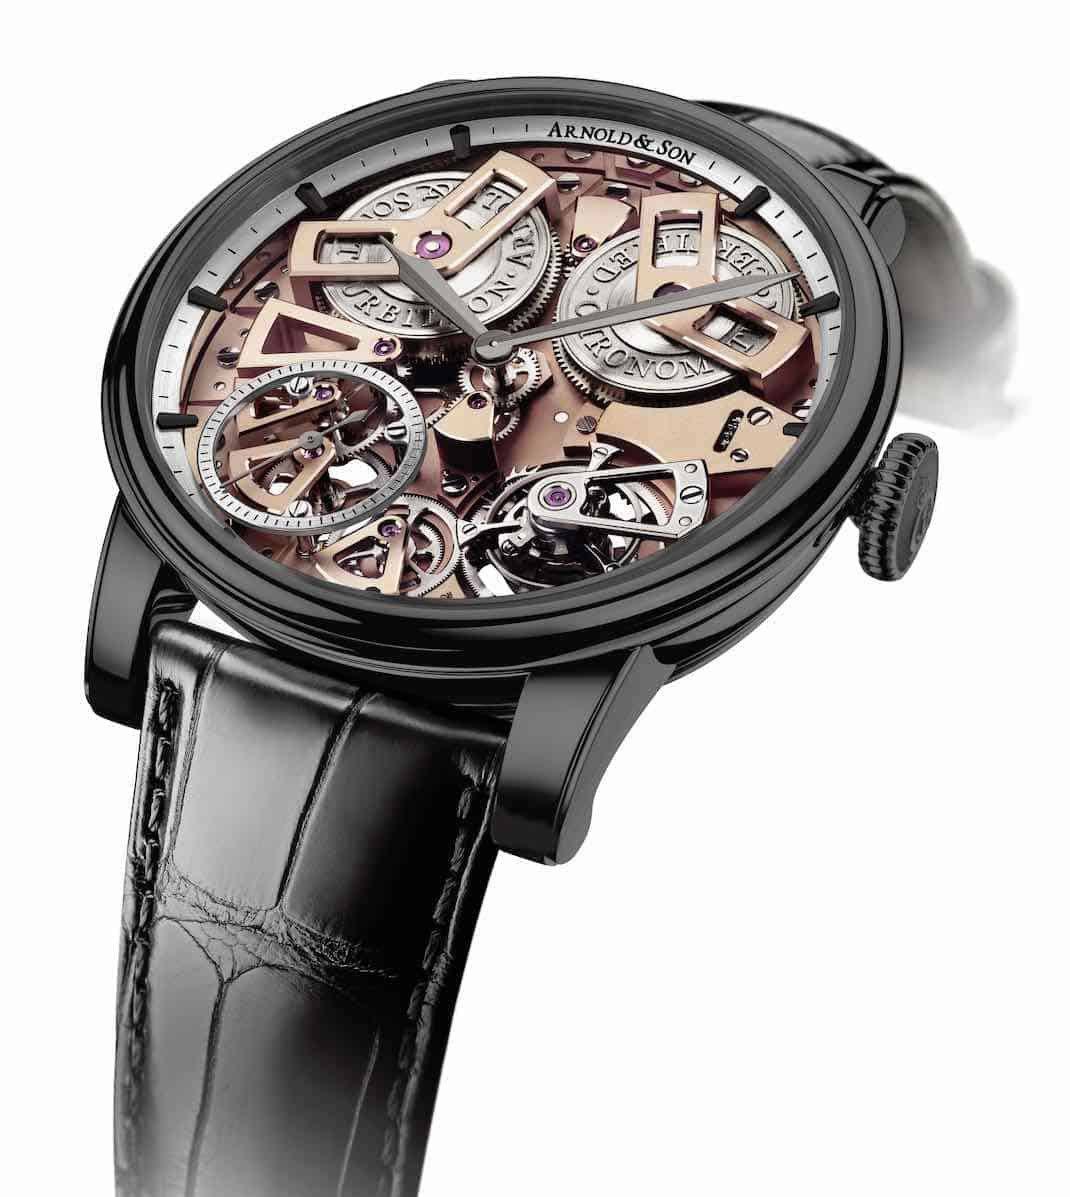 ARNOLD & SON presenta el ultra exclusivo: Tourbillon Chronometer No.36 Gunmetal